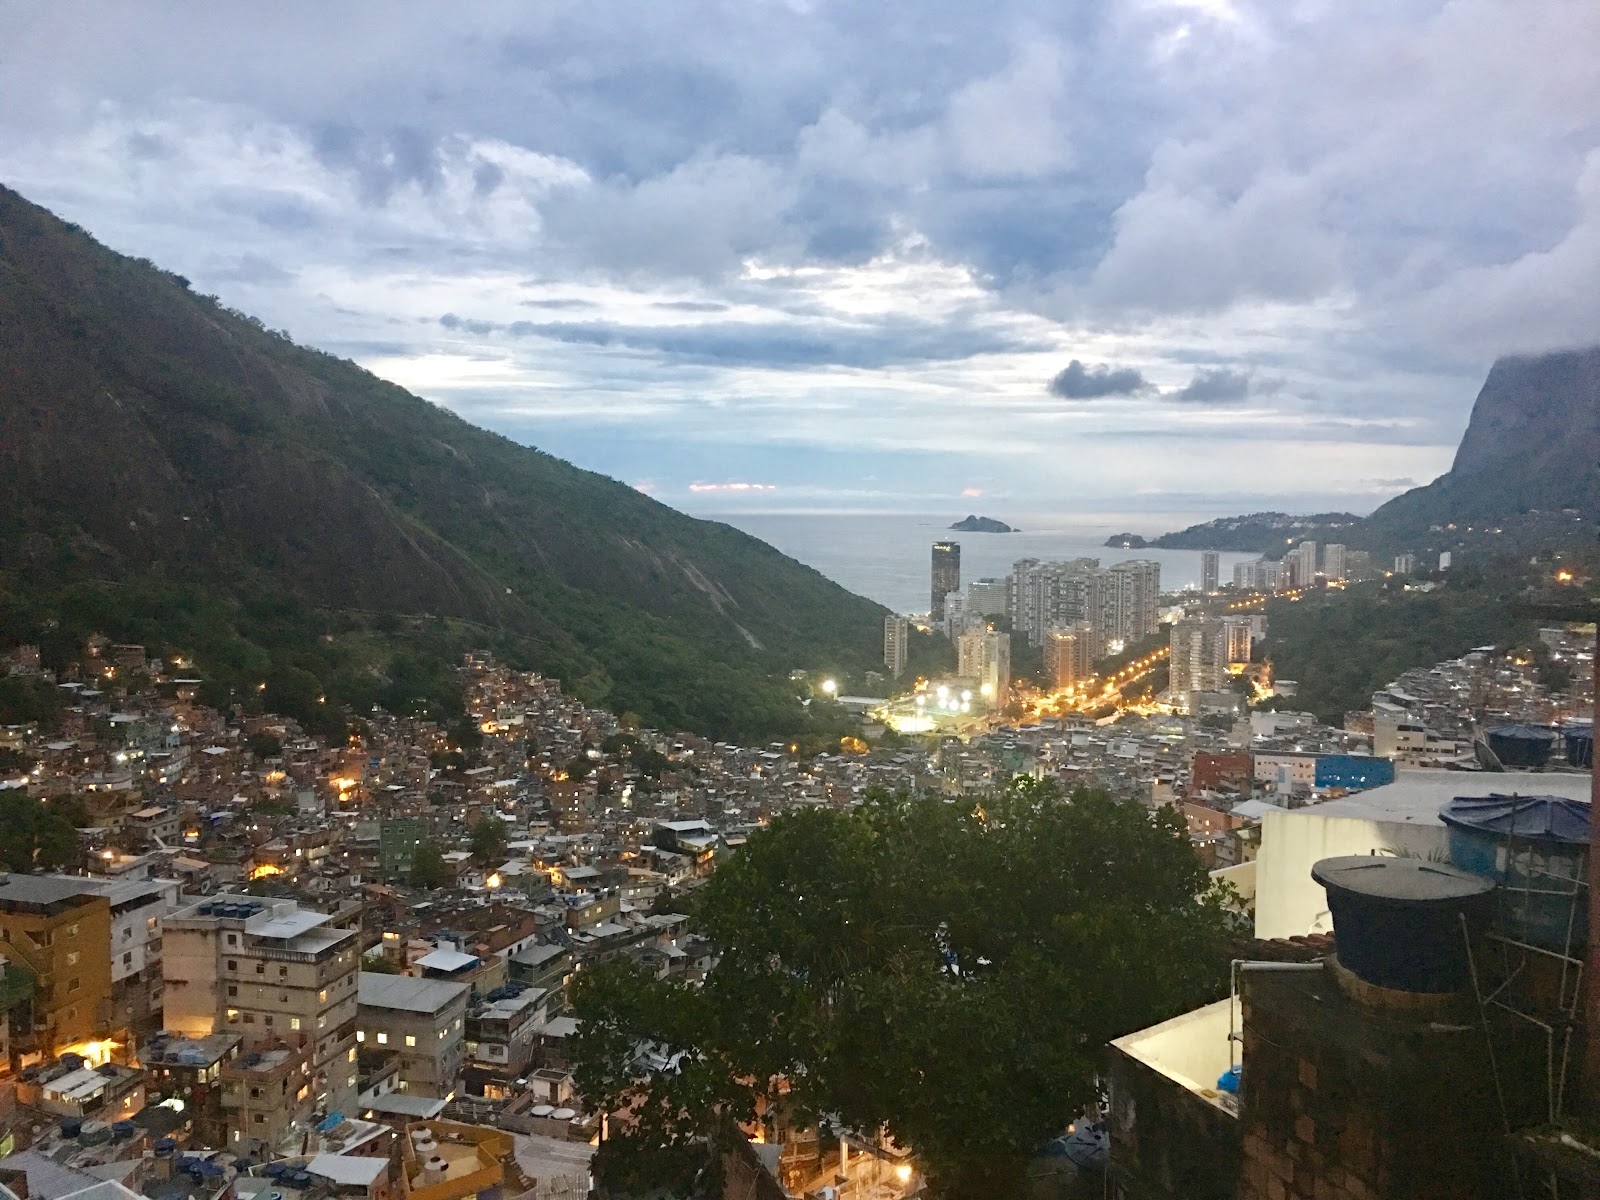 Ocean and favela view from the top of a terrace in Rocinha